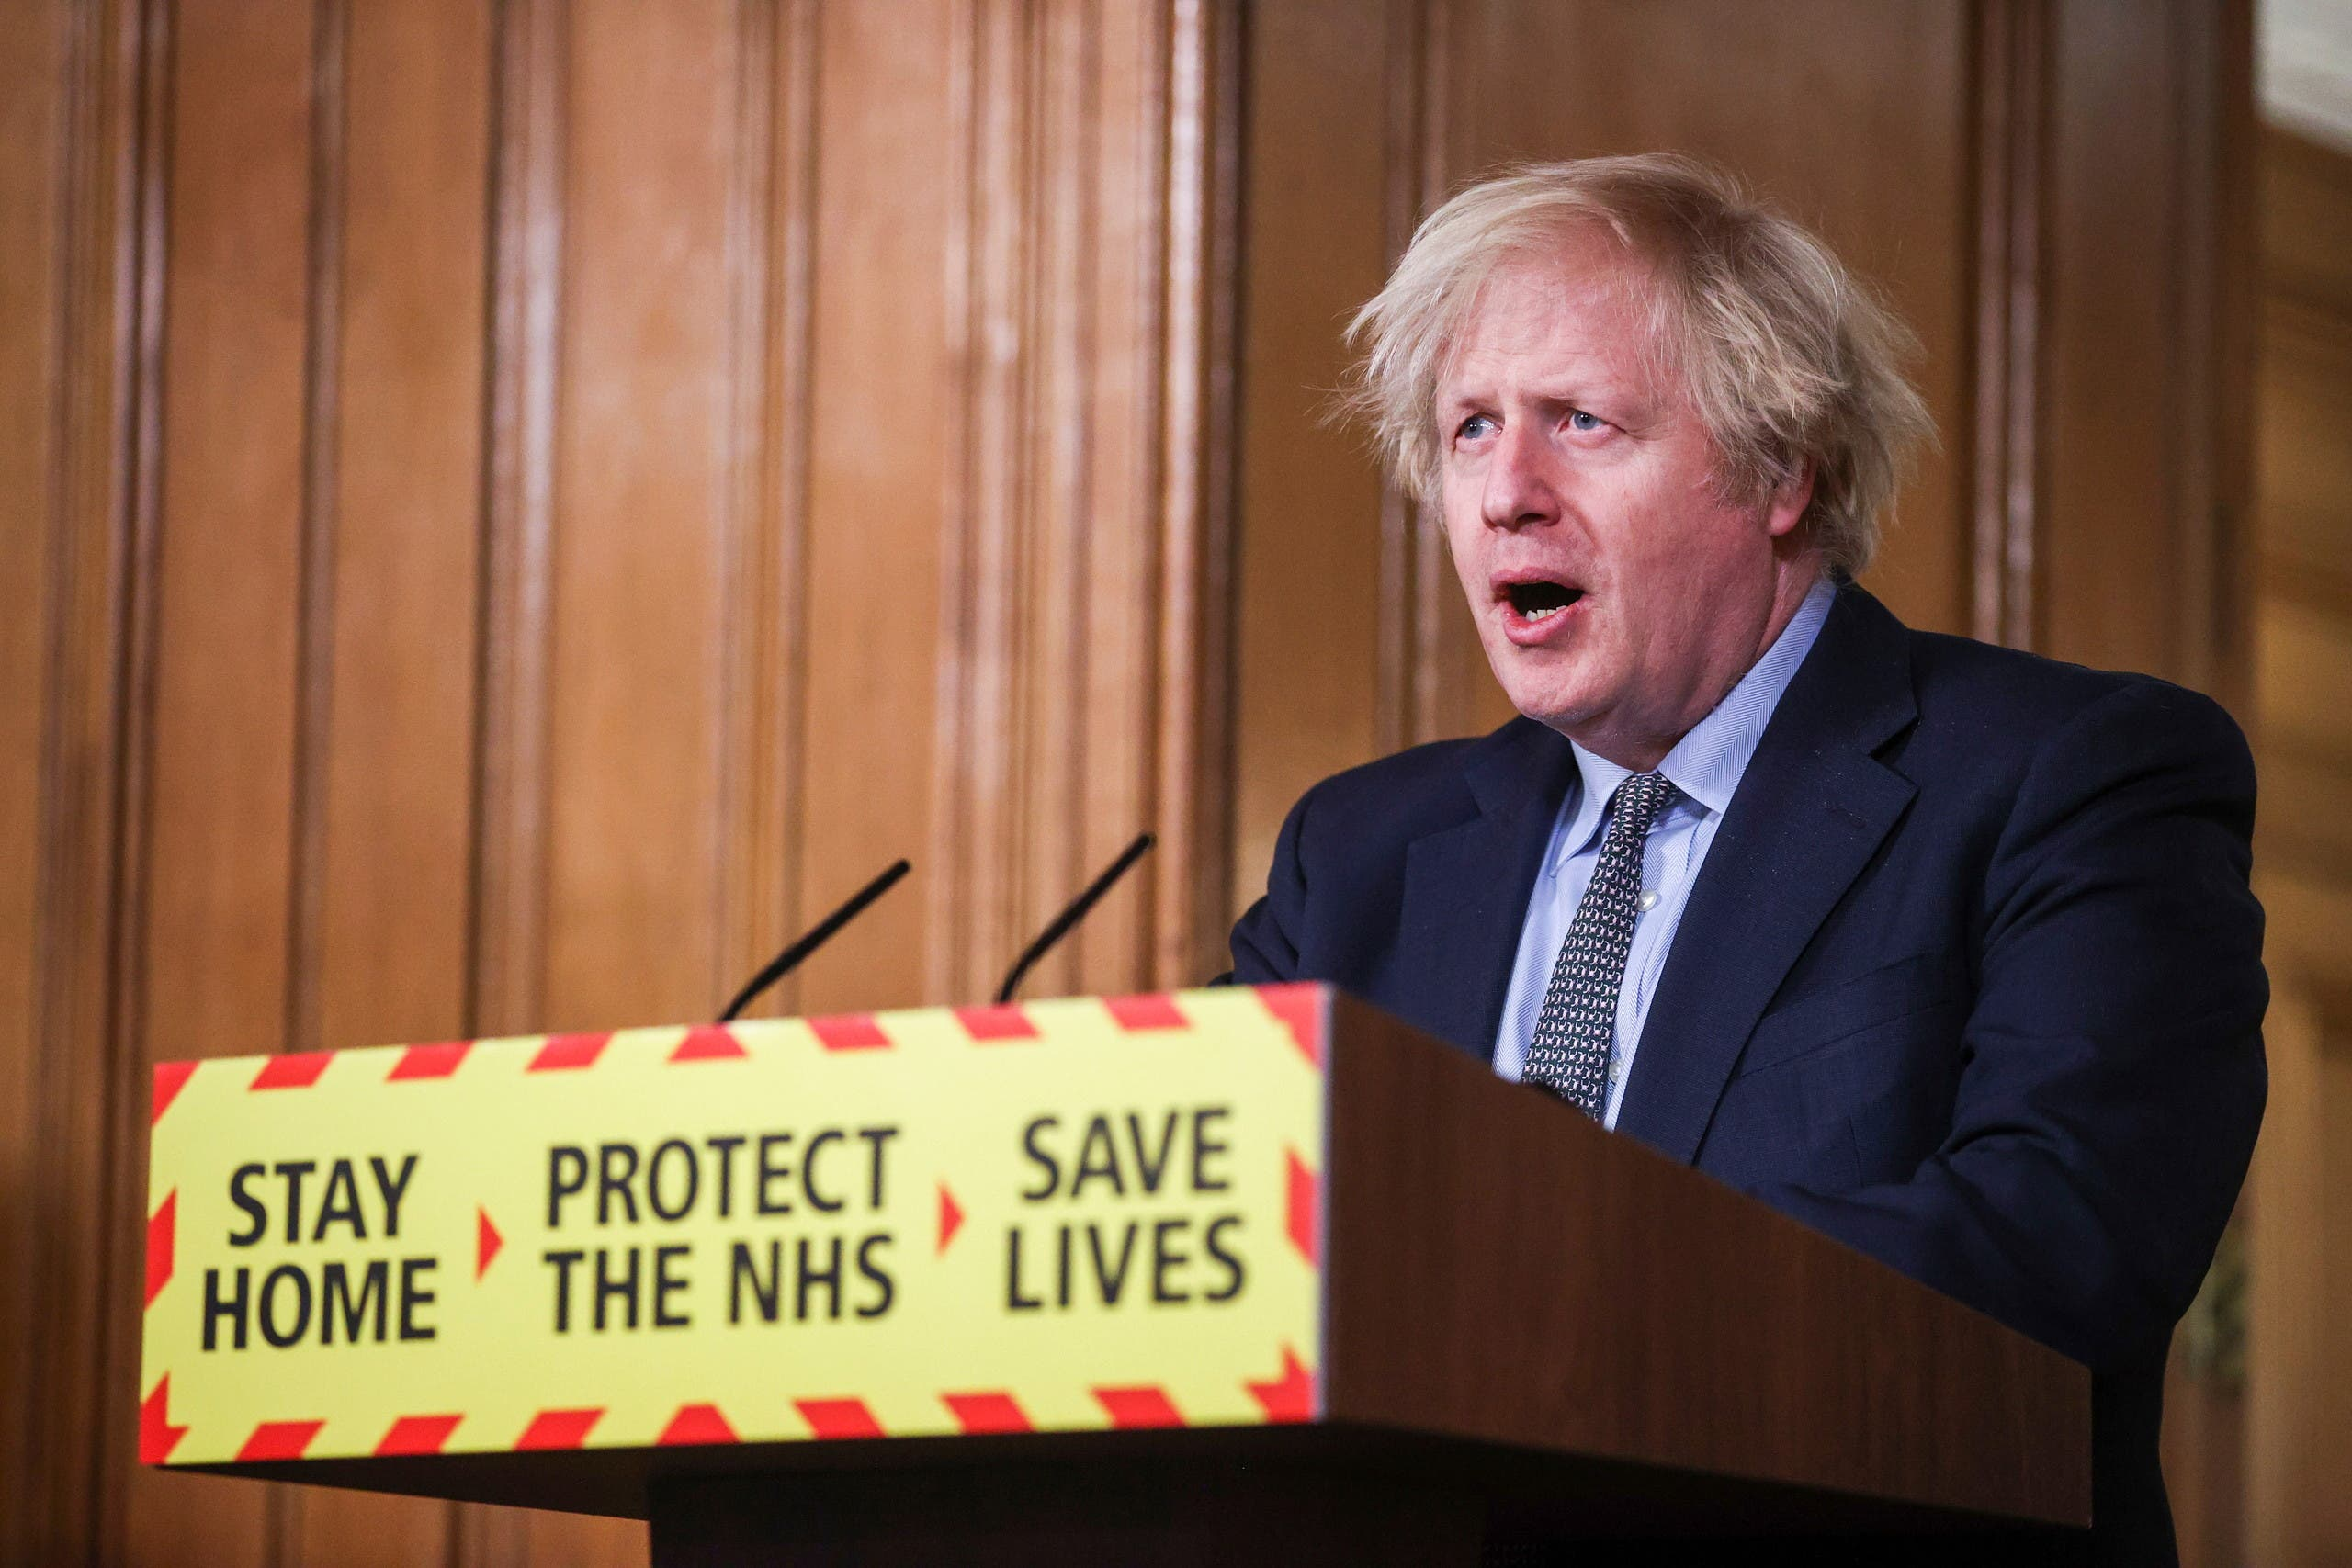 Britain's Prime Minister Boris Johnson holds a news conference at 10 Downing Street, on the day of reflection to mark the anniversary of Britain's first coronavirus disease (COVID-19) lockdown, in London, Britain March 23, 2021.(File photo: Reuters)